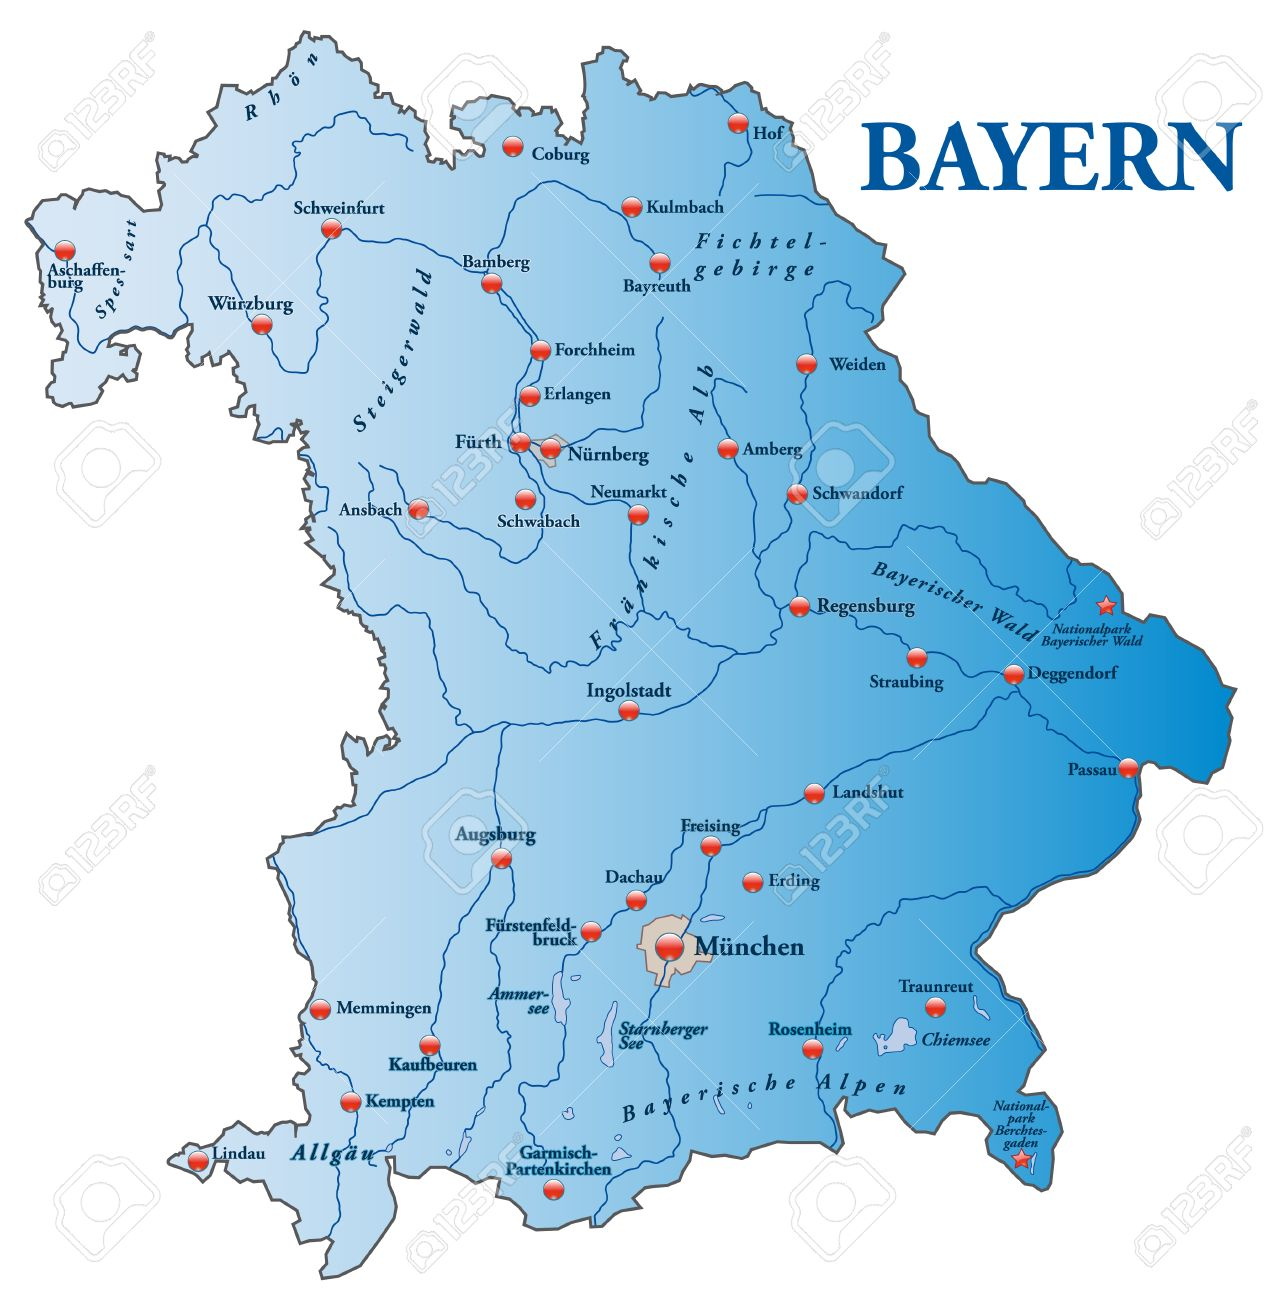 Map Of Bavaria As An Overview Map In Blue Royalty Free Cliparts